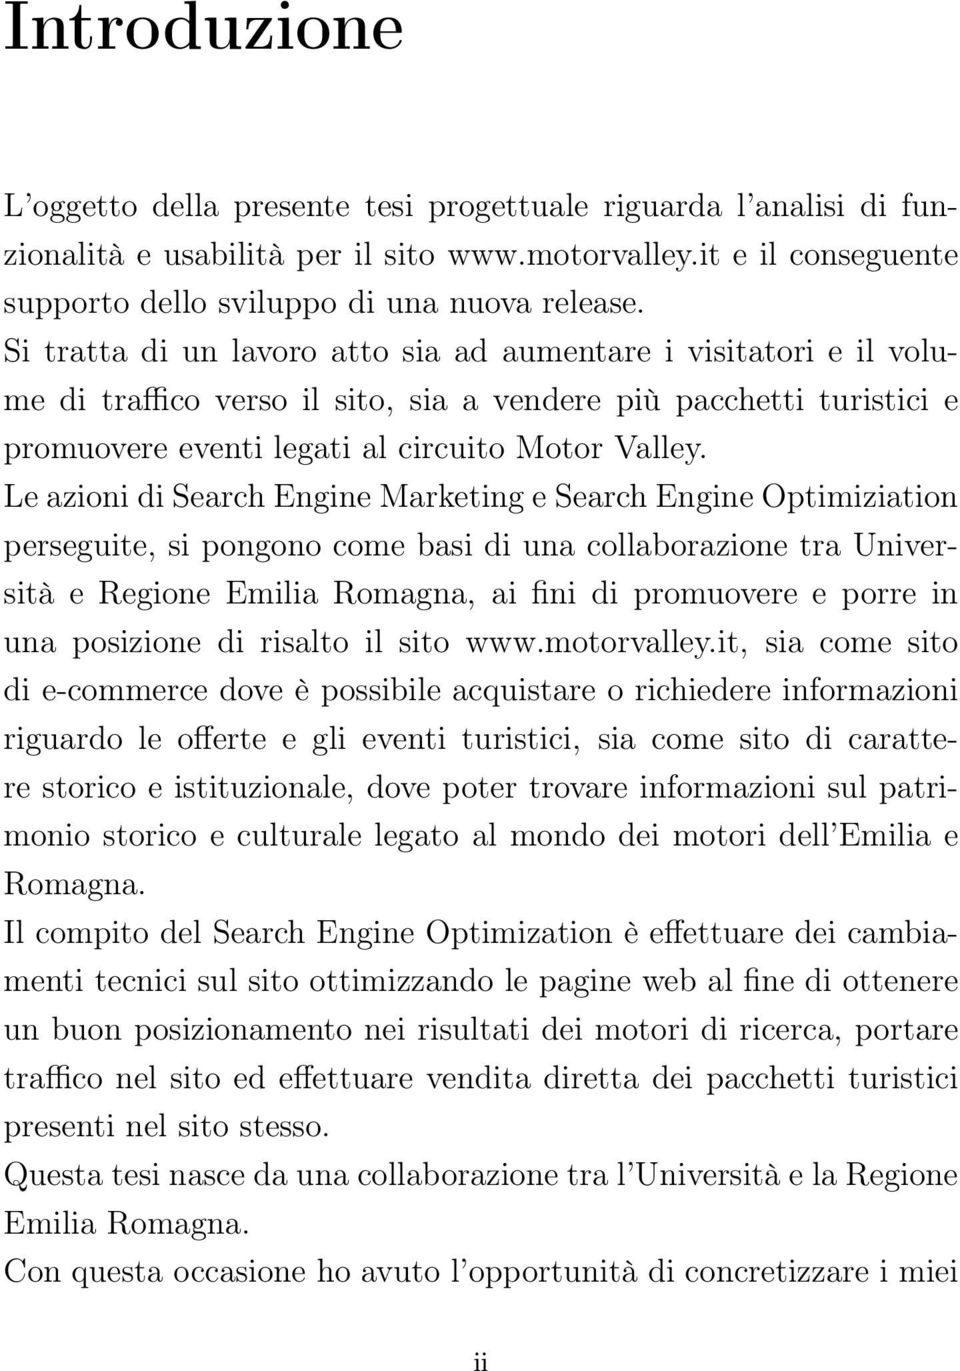 Le azioni di Search Engine Marketing e Search Engine Optimiziation perseguite, si pongono come basi di una collaborazione tra Università e Regione Emilia Romagna, ai fini di promuovere e porre in una